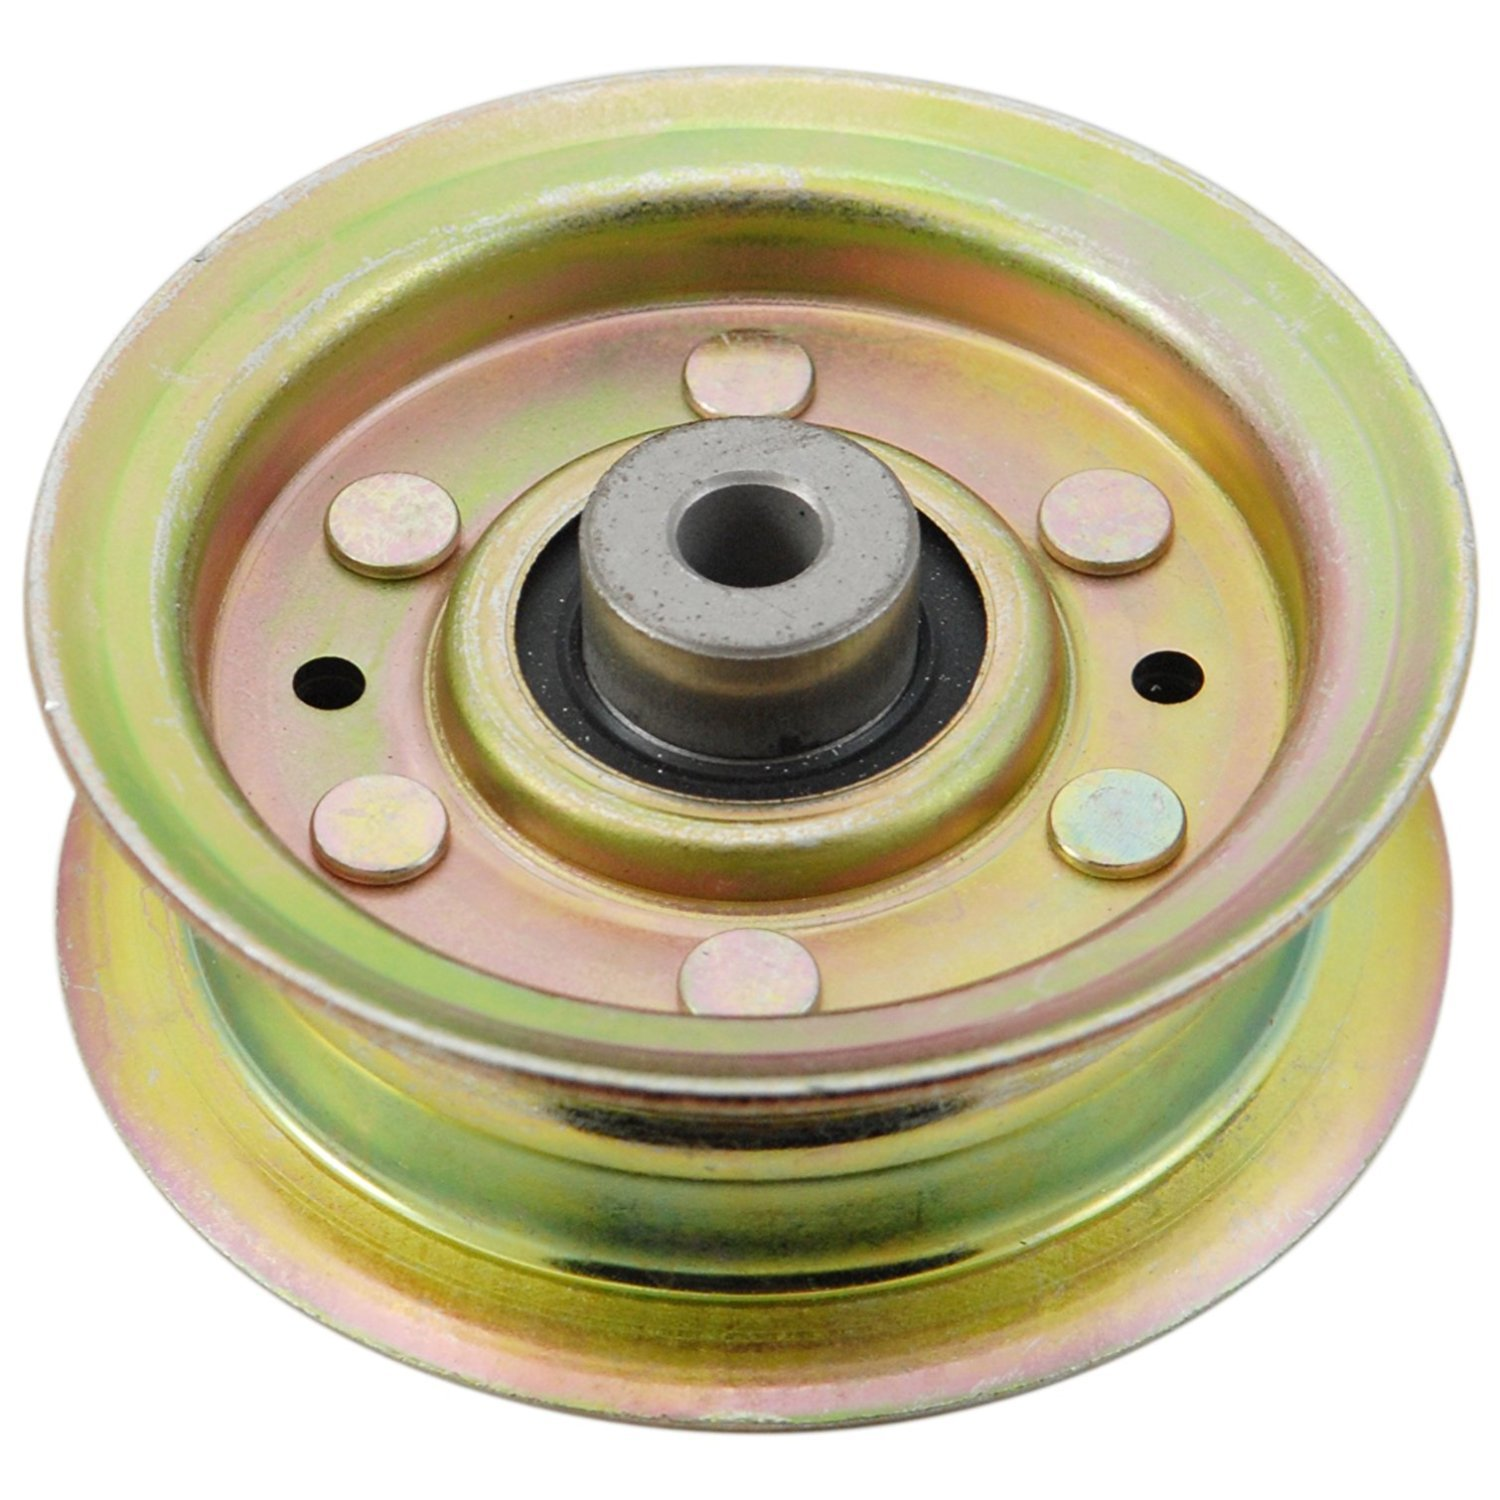 "Parts Camp 173437 Idler Pulley Replaces Poulan Husqvarna Craftsman for 42"" Decks"